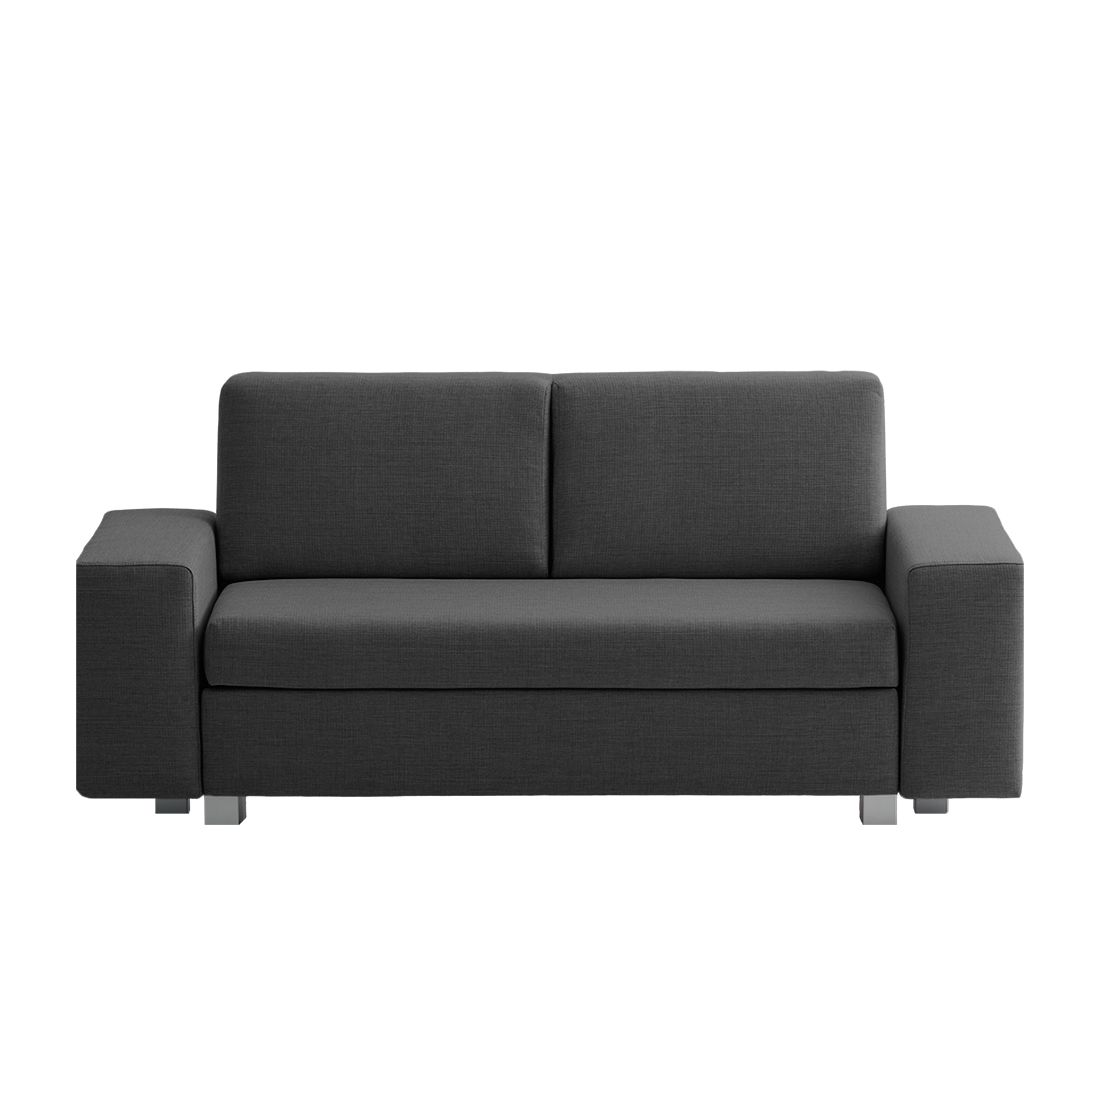 goedkoop Slaapbank Plaza geweven stof Antraciet 178cm Brede armleuning chillout by Franz Fertig